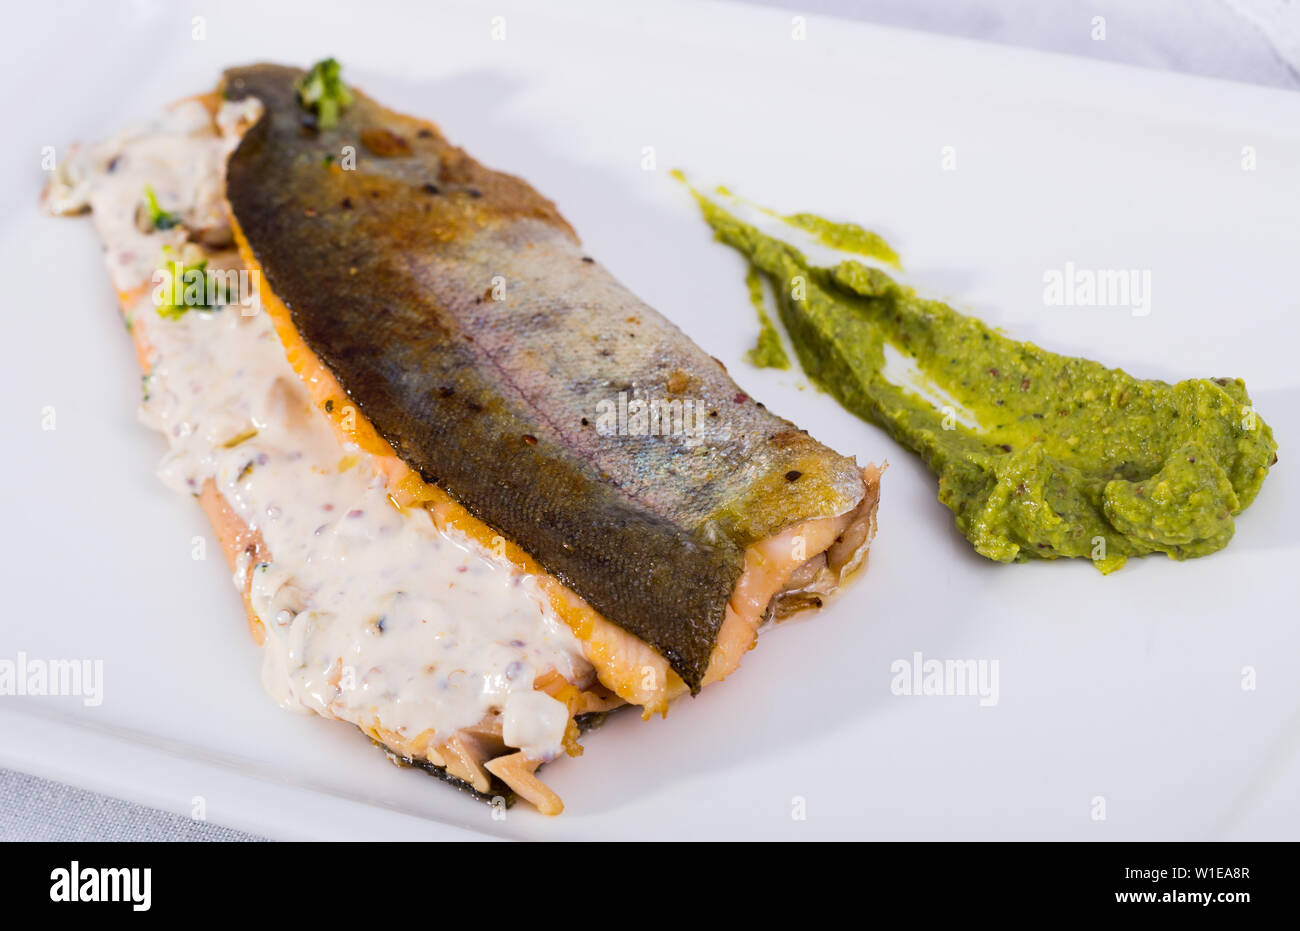 Baked trout fillets with vegetable garnish from pureed broccoli with tartare sauce on white dish - Stock Image